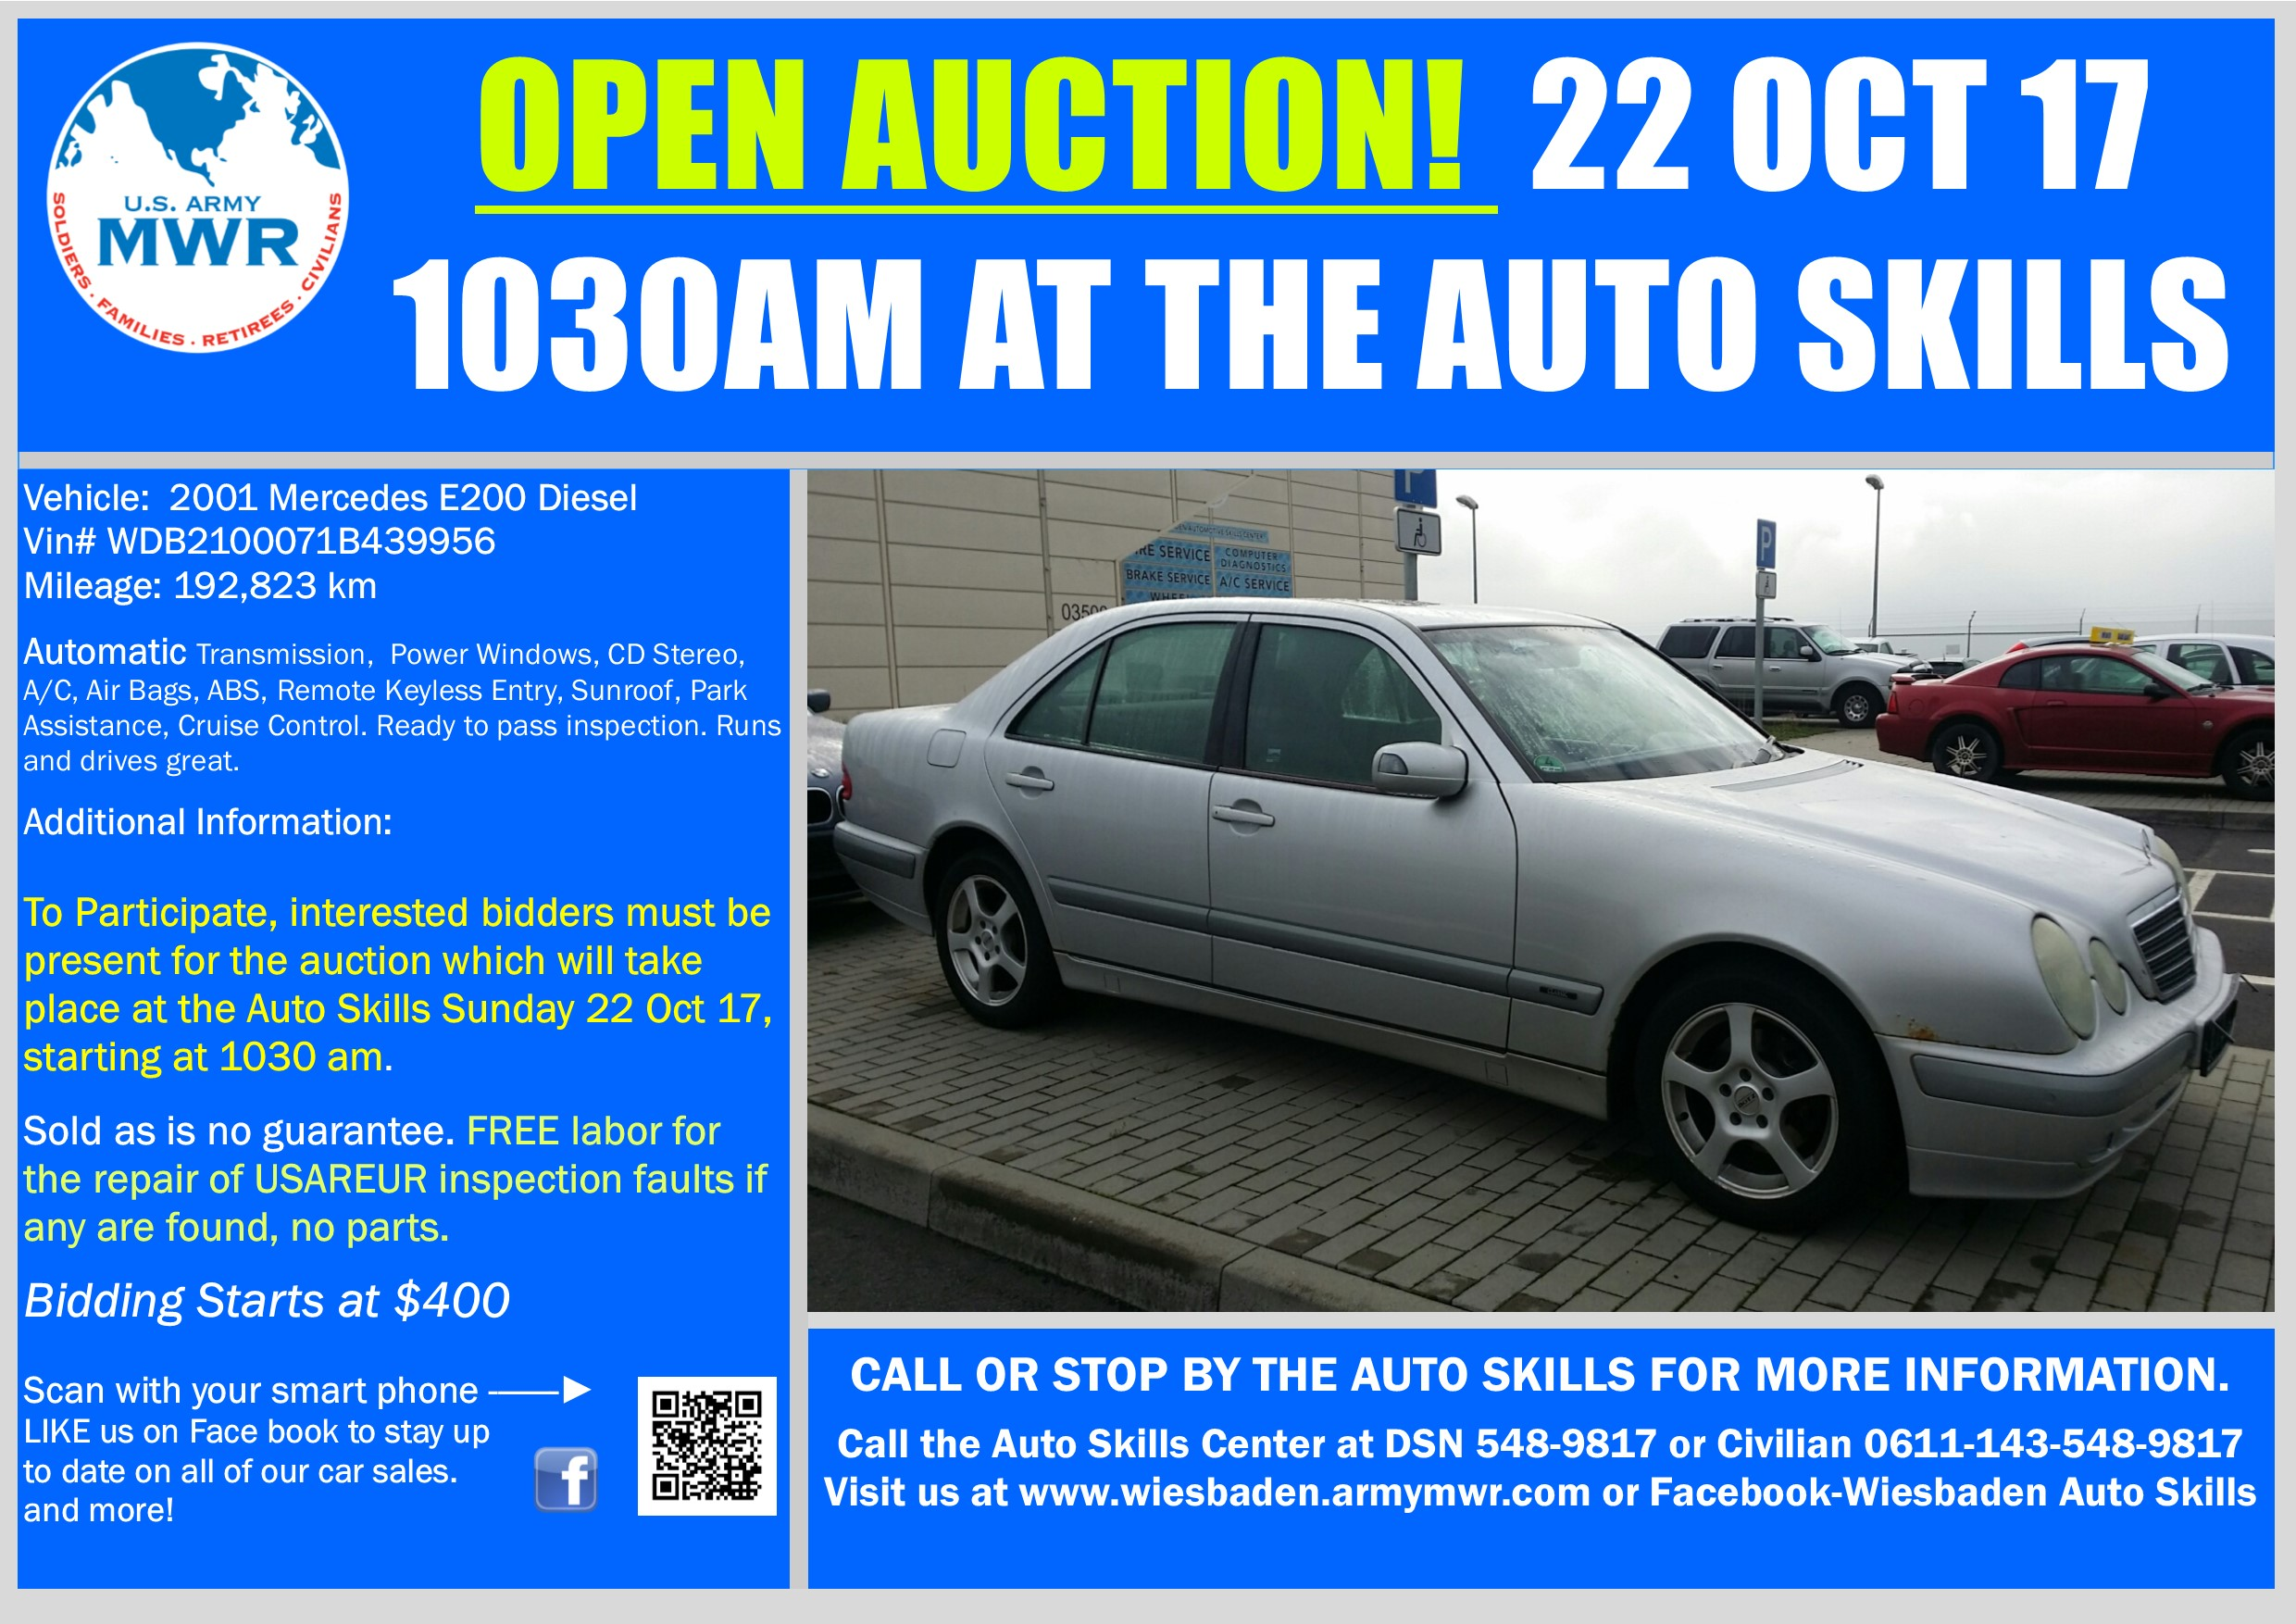 Sale_Mercedes E200  22 Oct 17 Open Auction.jpg